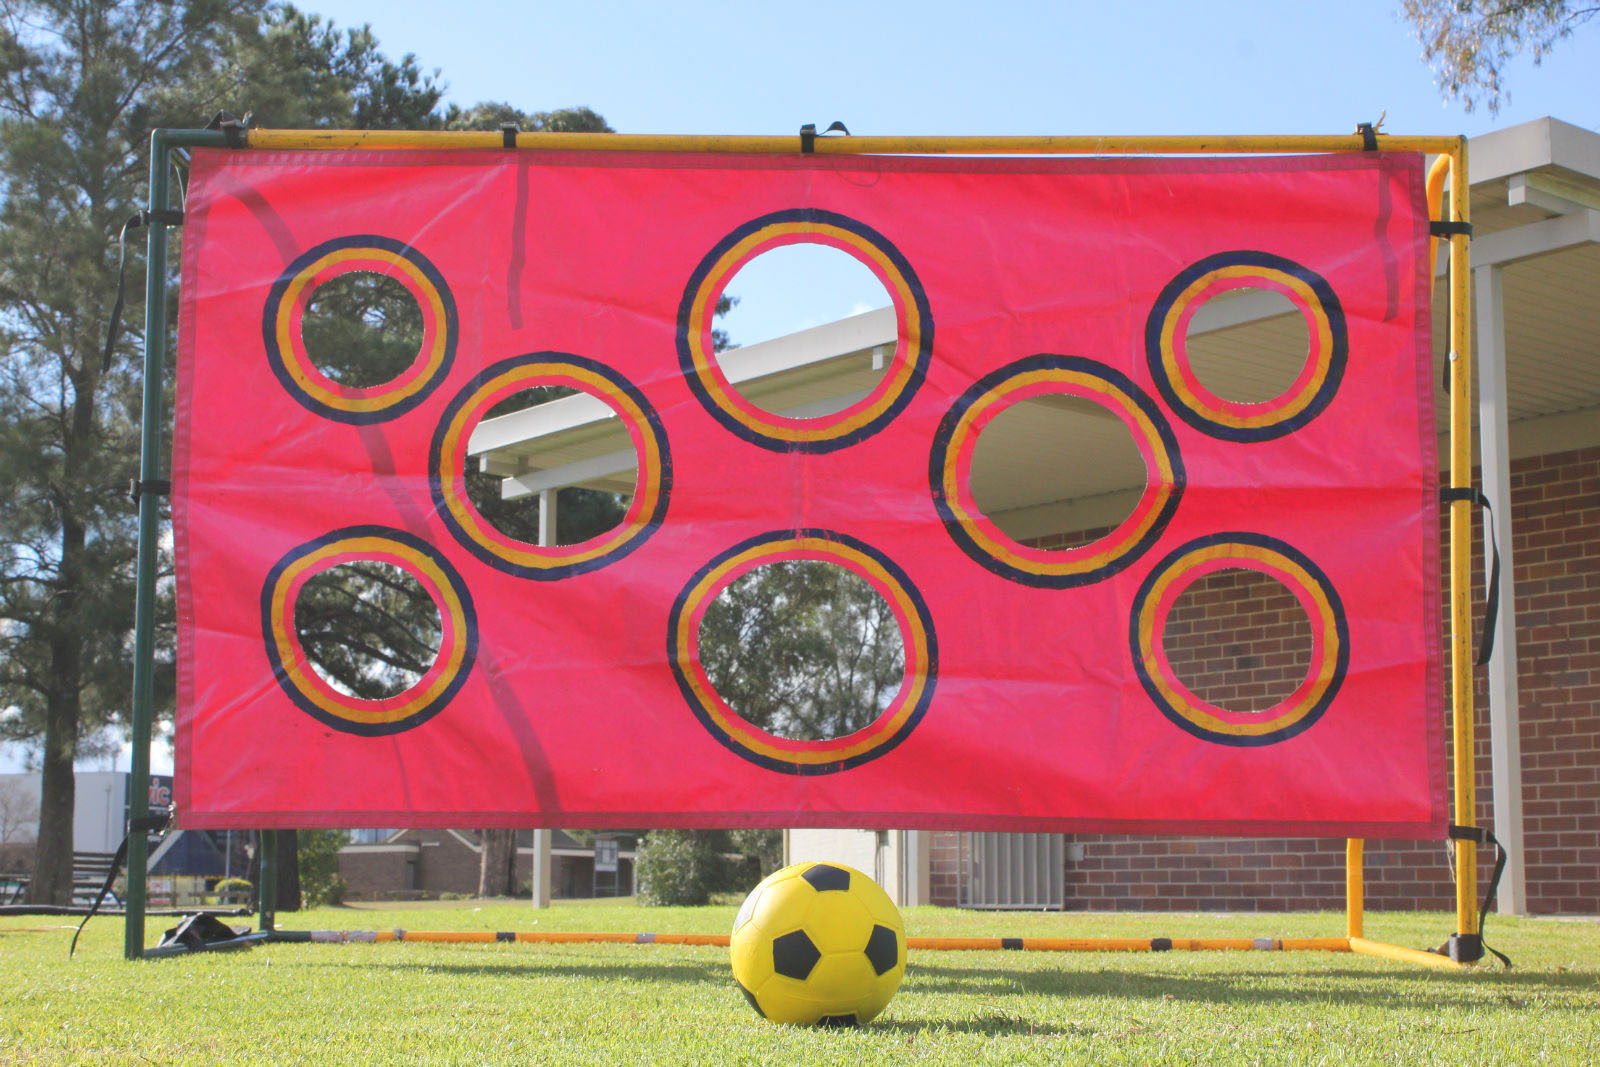 Footy Passing Game And Soccer Shoot Out Game For Hire In